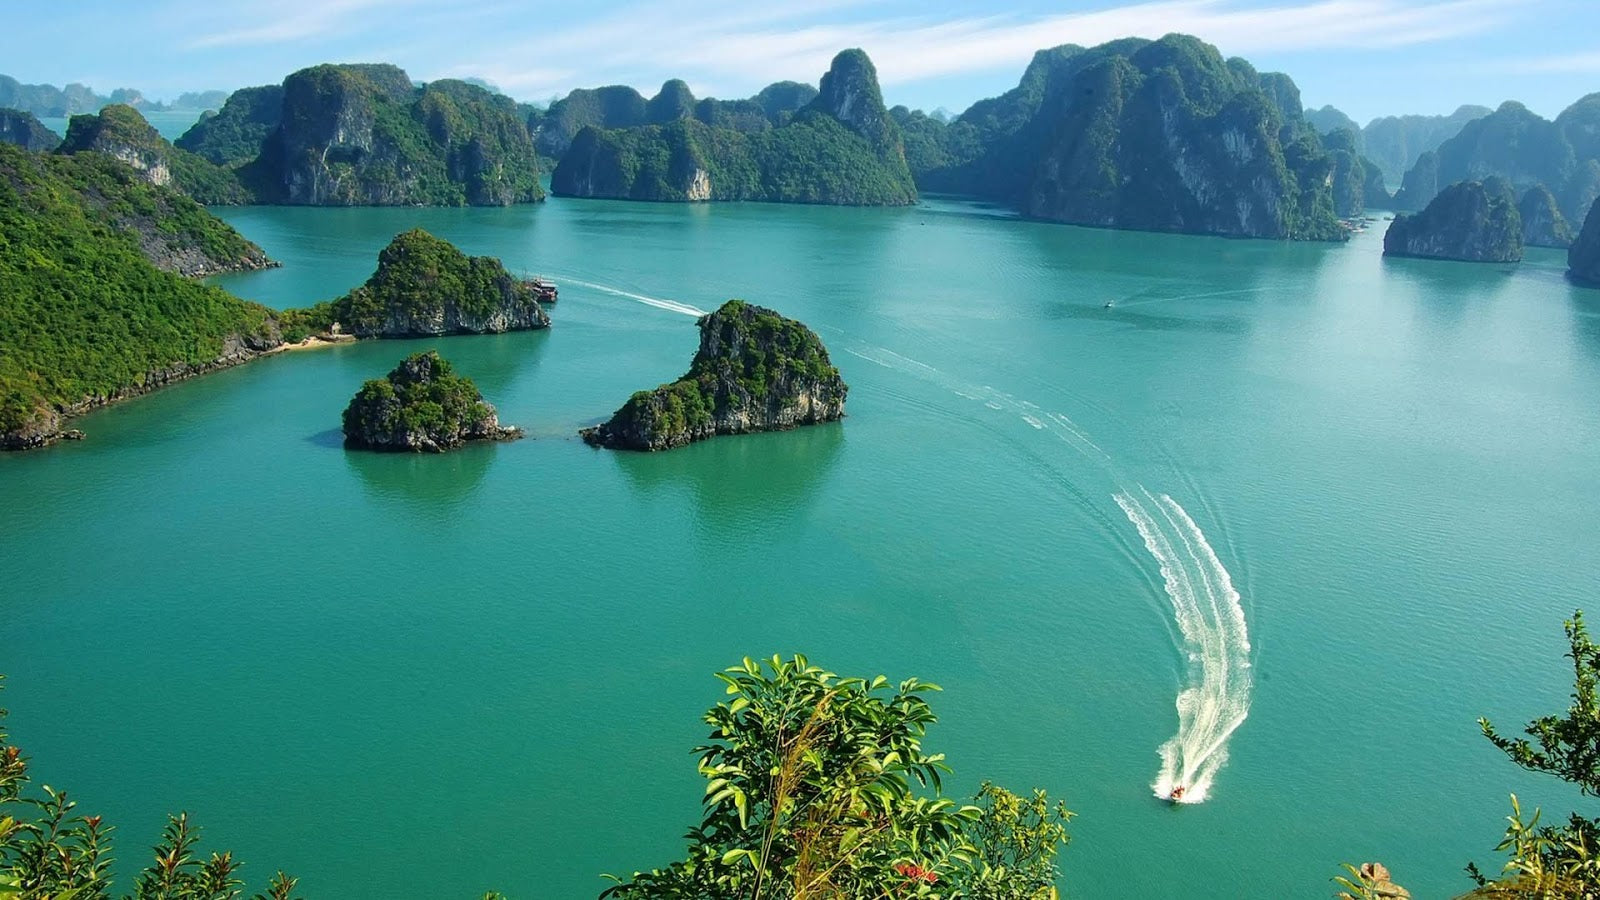 Top Ultimate Ways to View Halong Bay from Above (2021 Updated)